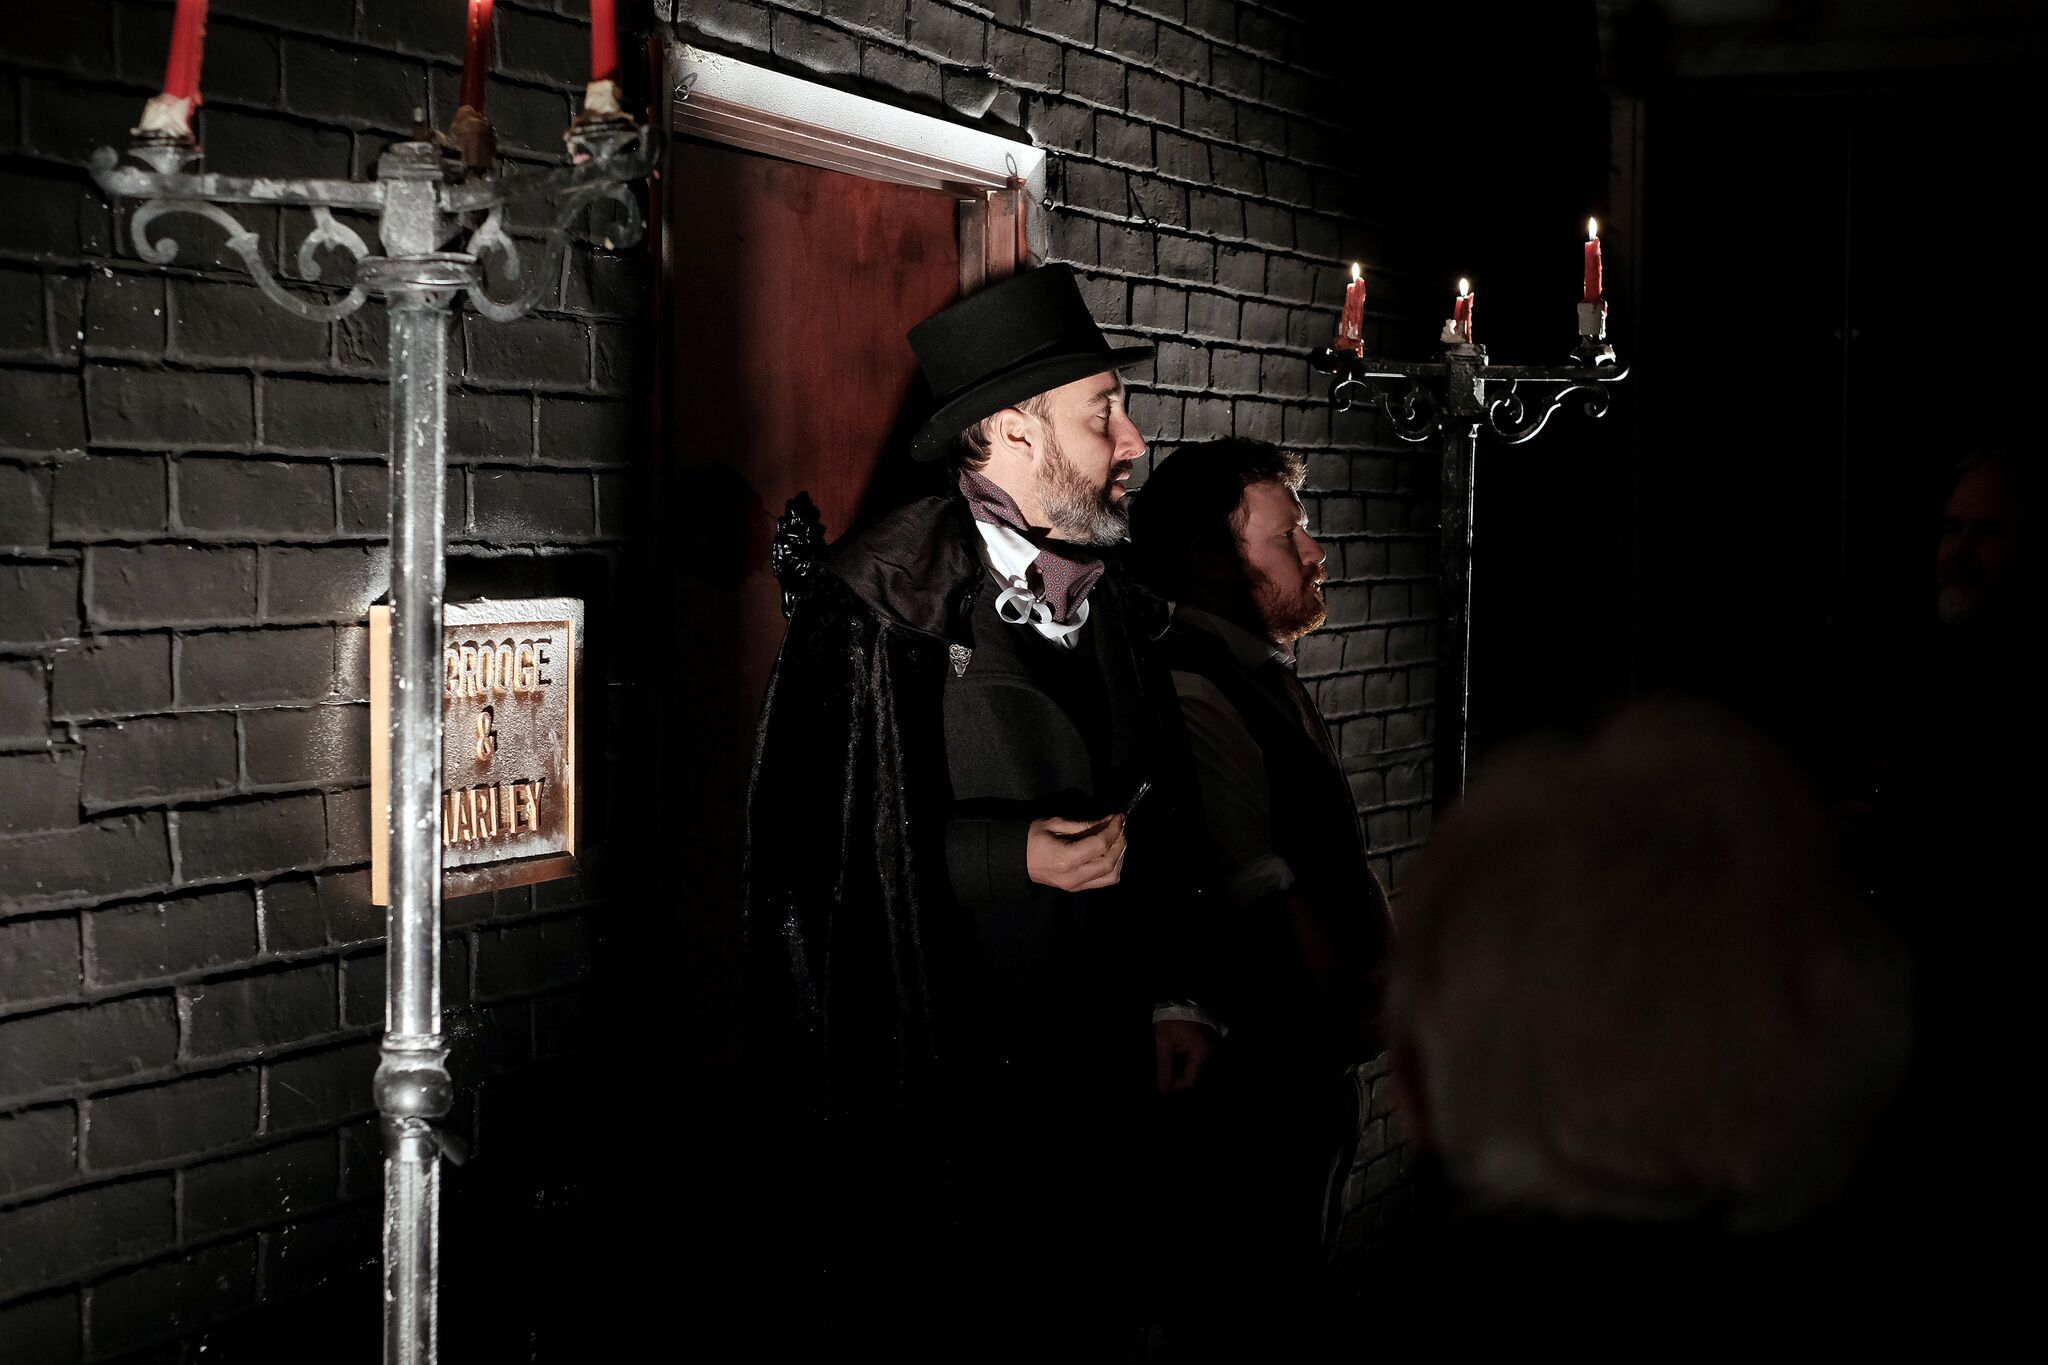 'A Christmas Carol' at Scrooge's Parlour, Shoreditch